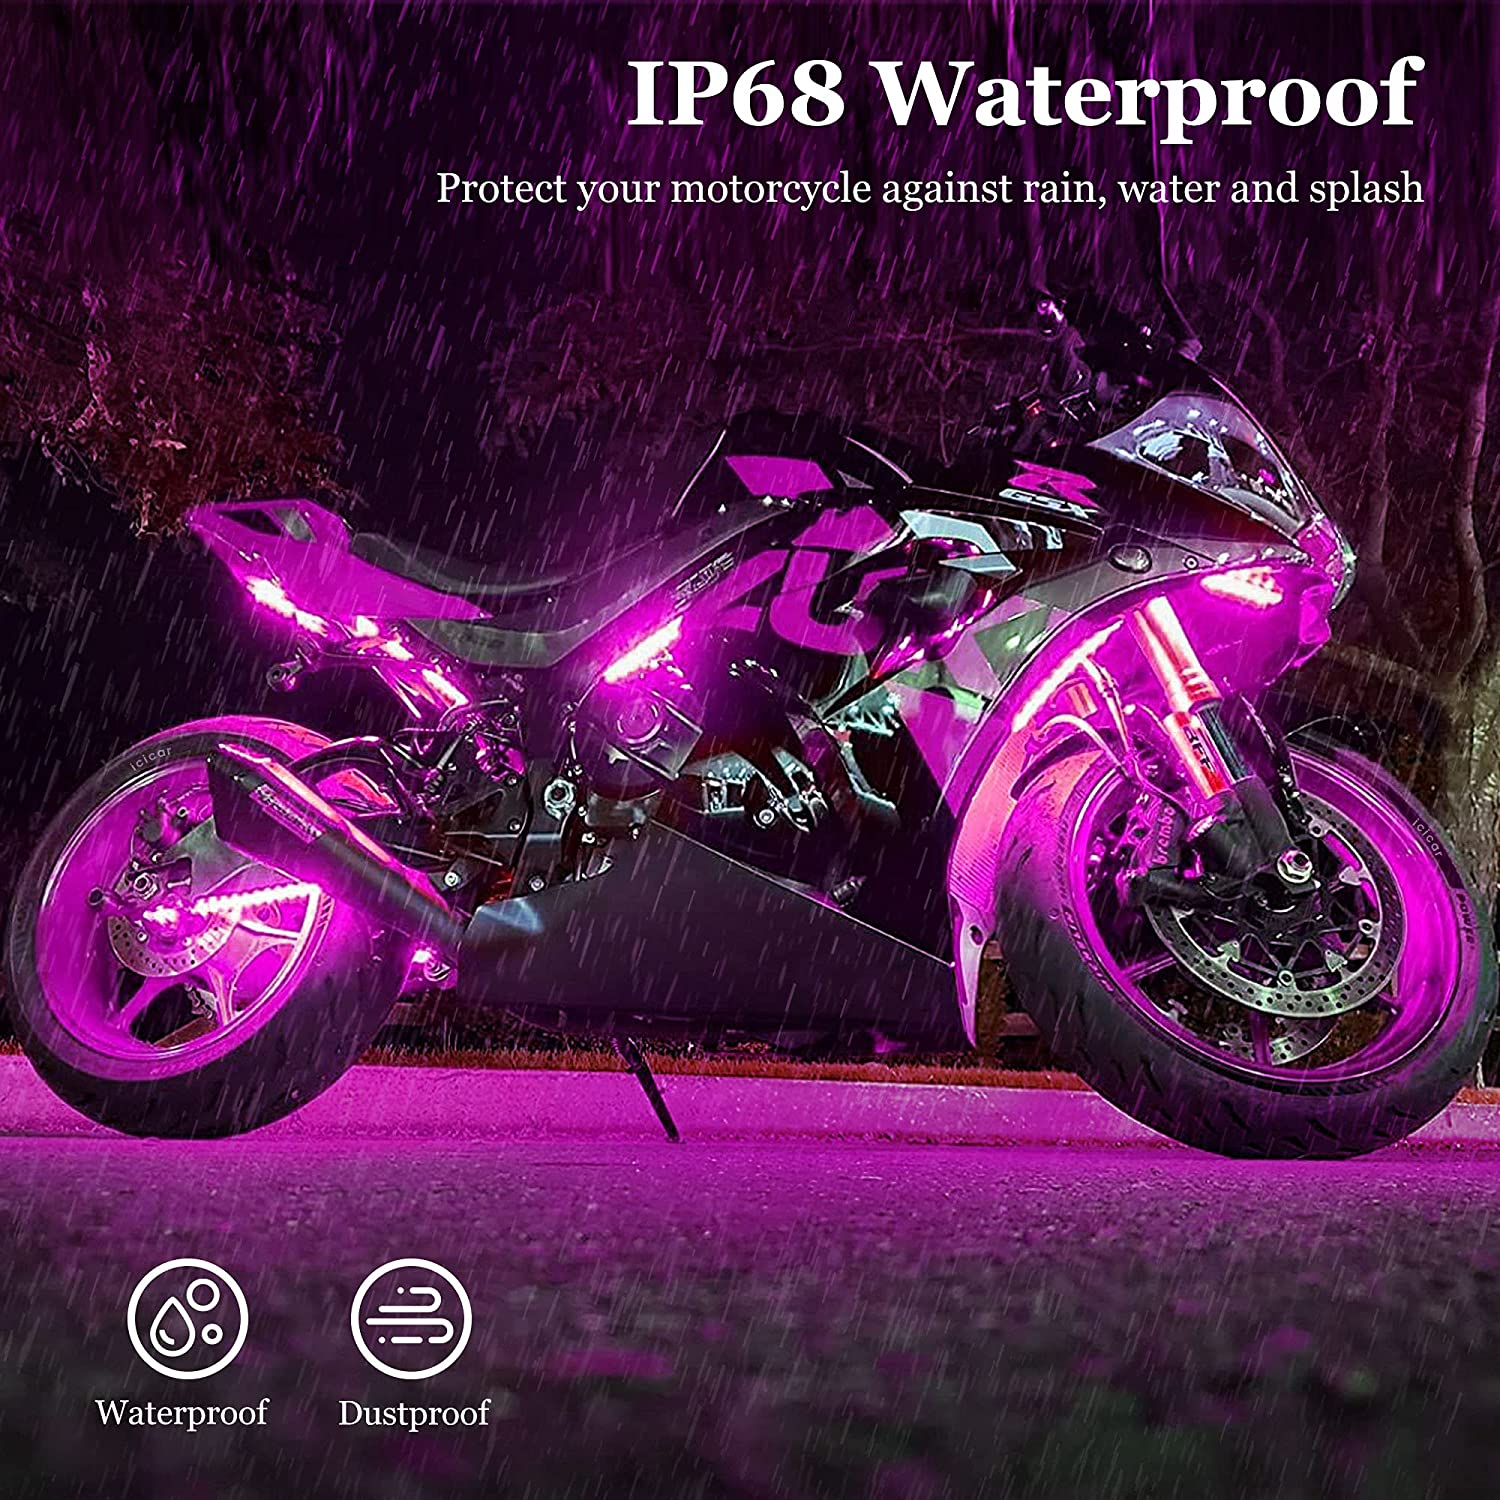 icicar 8pcs Motorcycle LED Lights Motorcycle LED Light Kit App Control RGB 16 Million Colors Brake Light Music Mode IP68 Waterproof w//Dual Remote Control LED Lights for Motorcycles